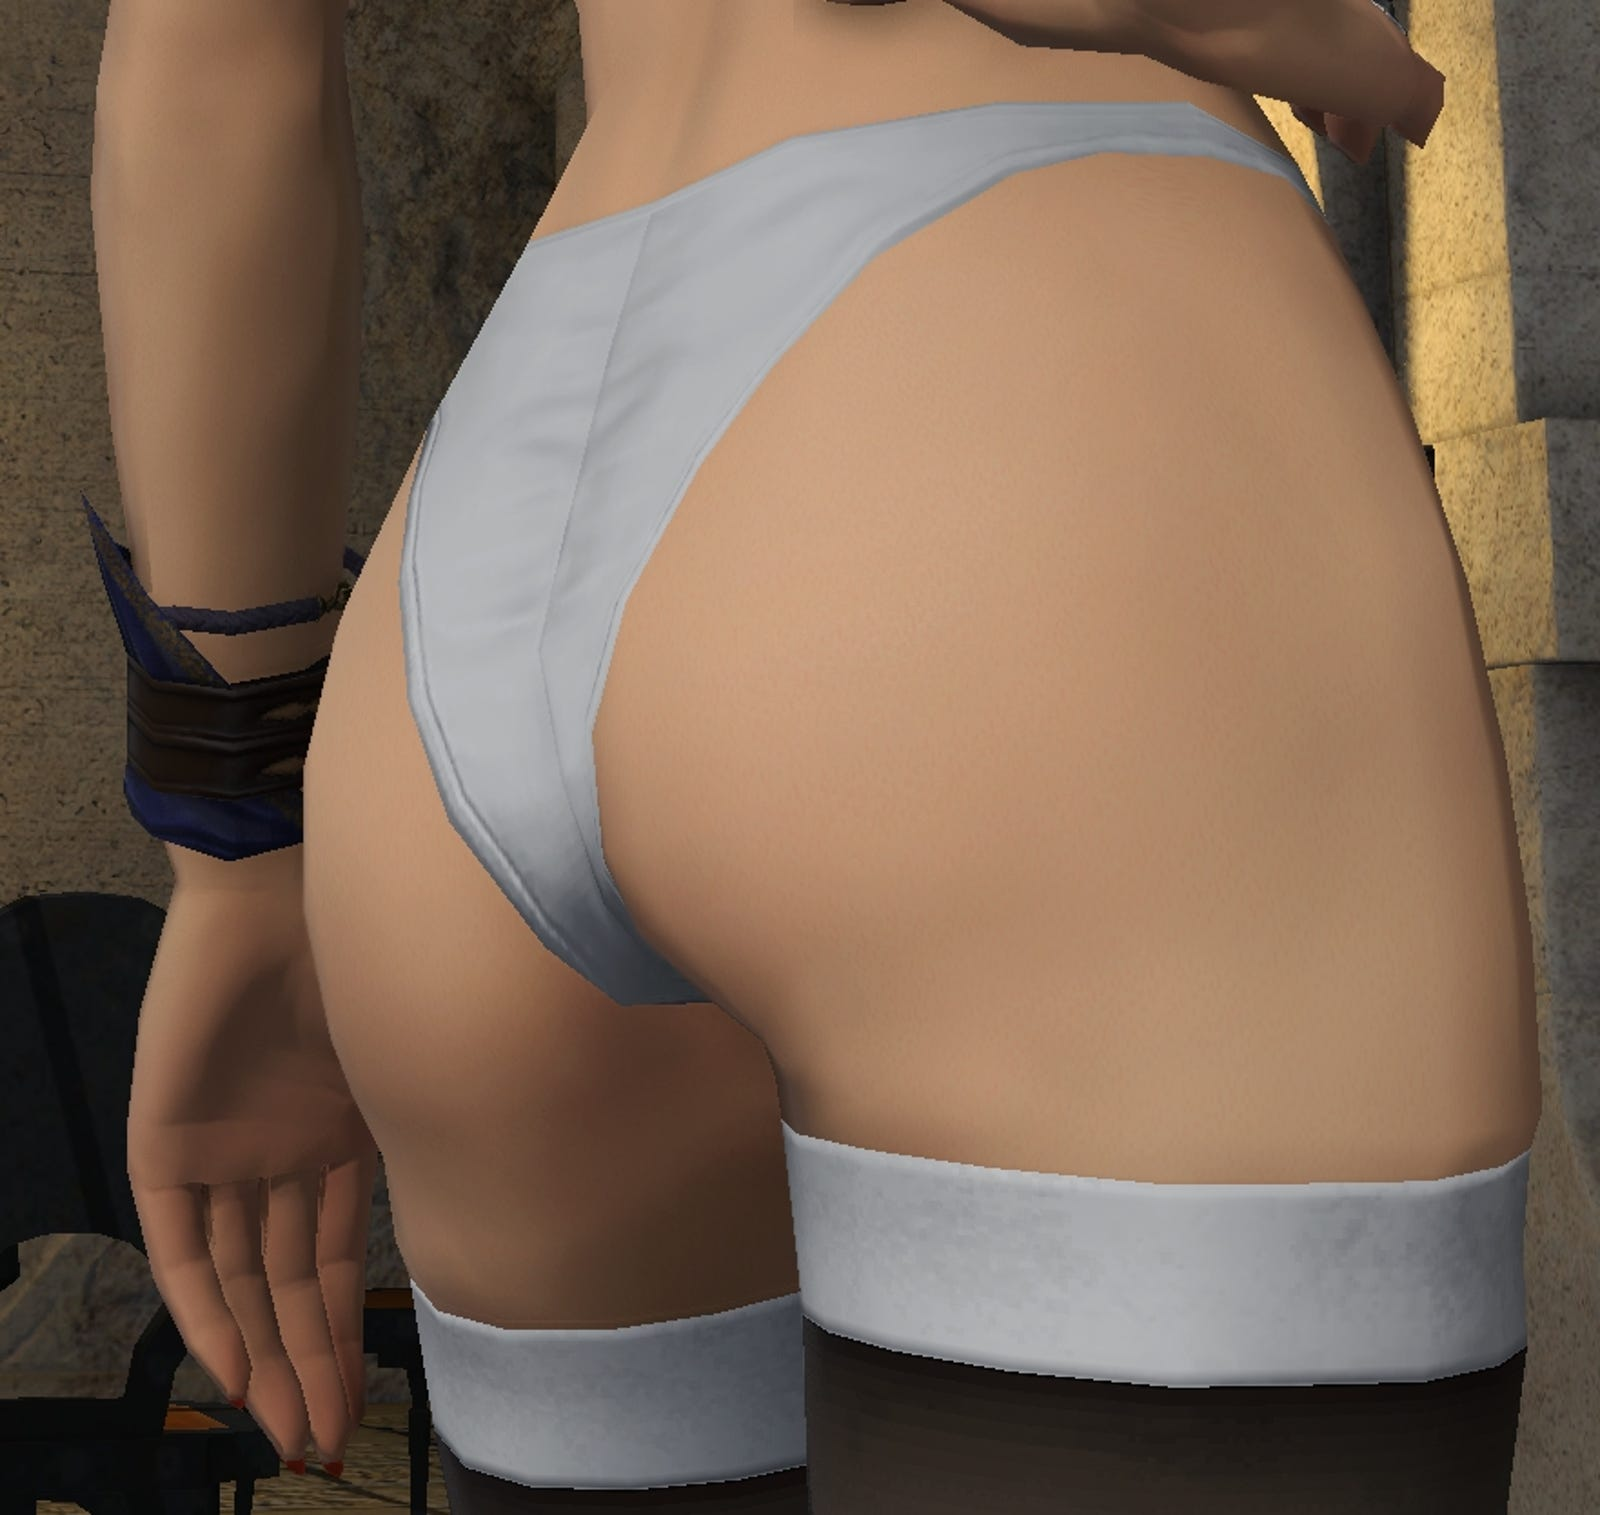 A picture of the ass.